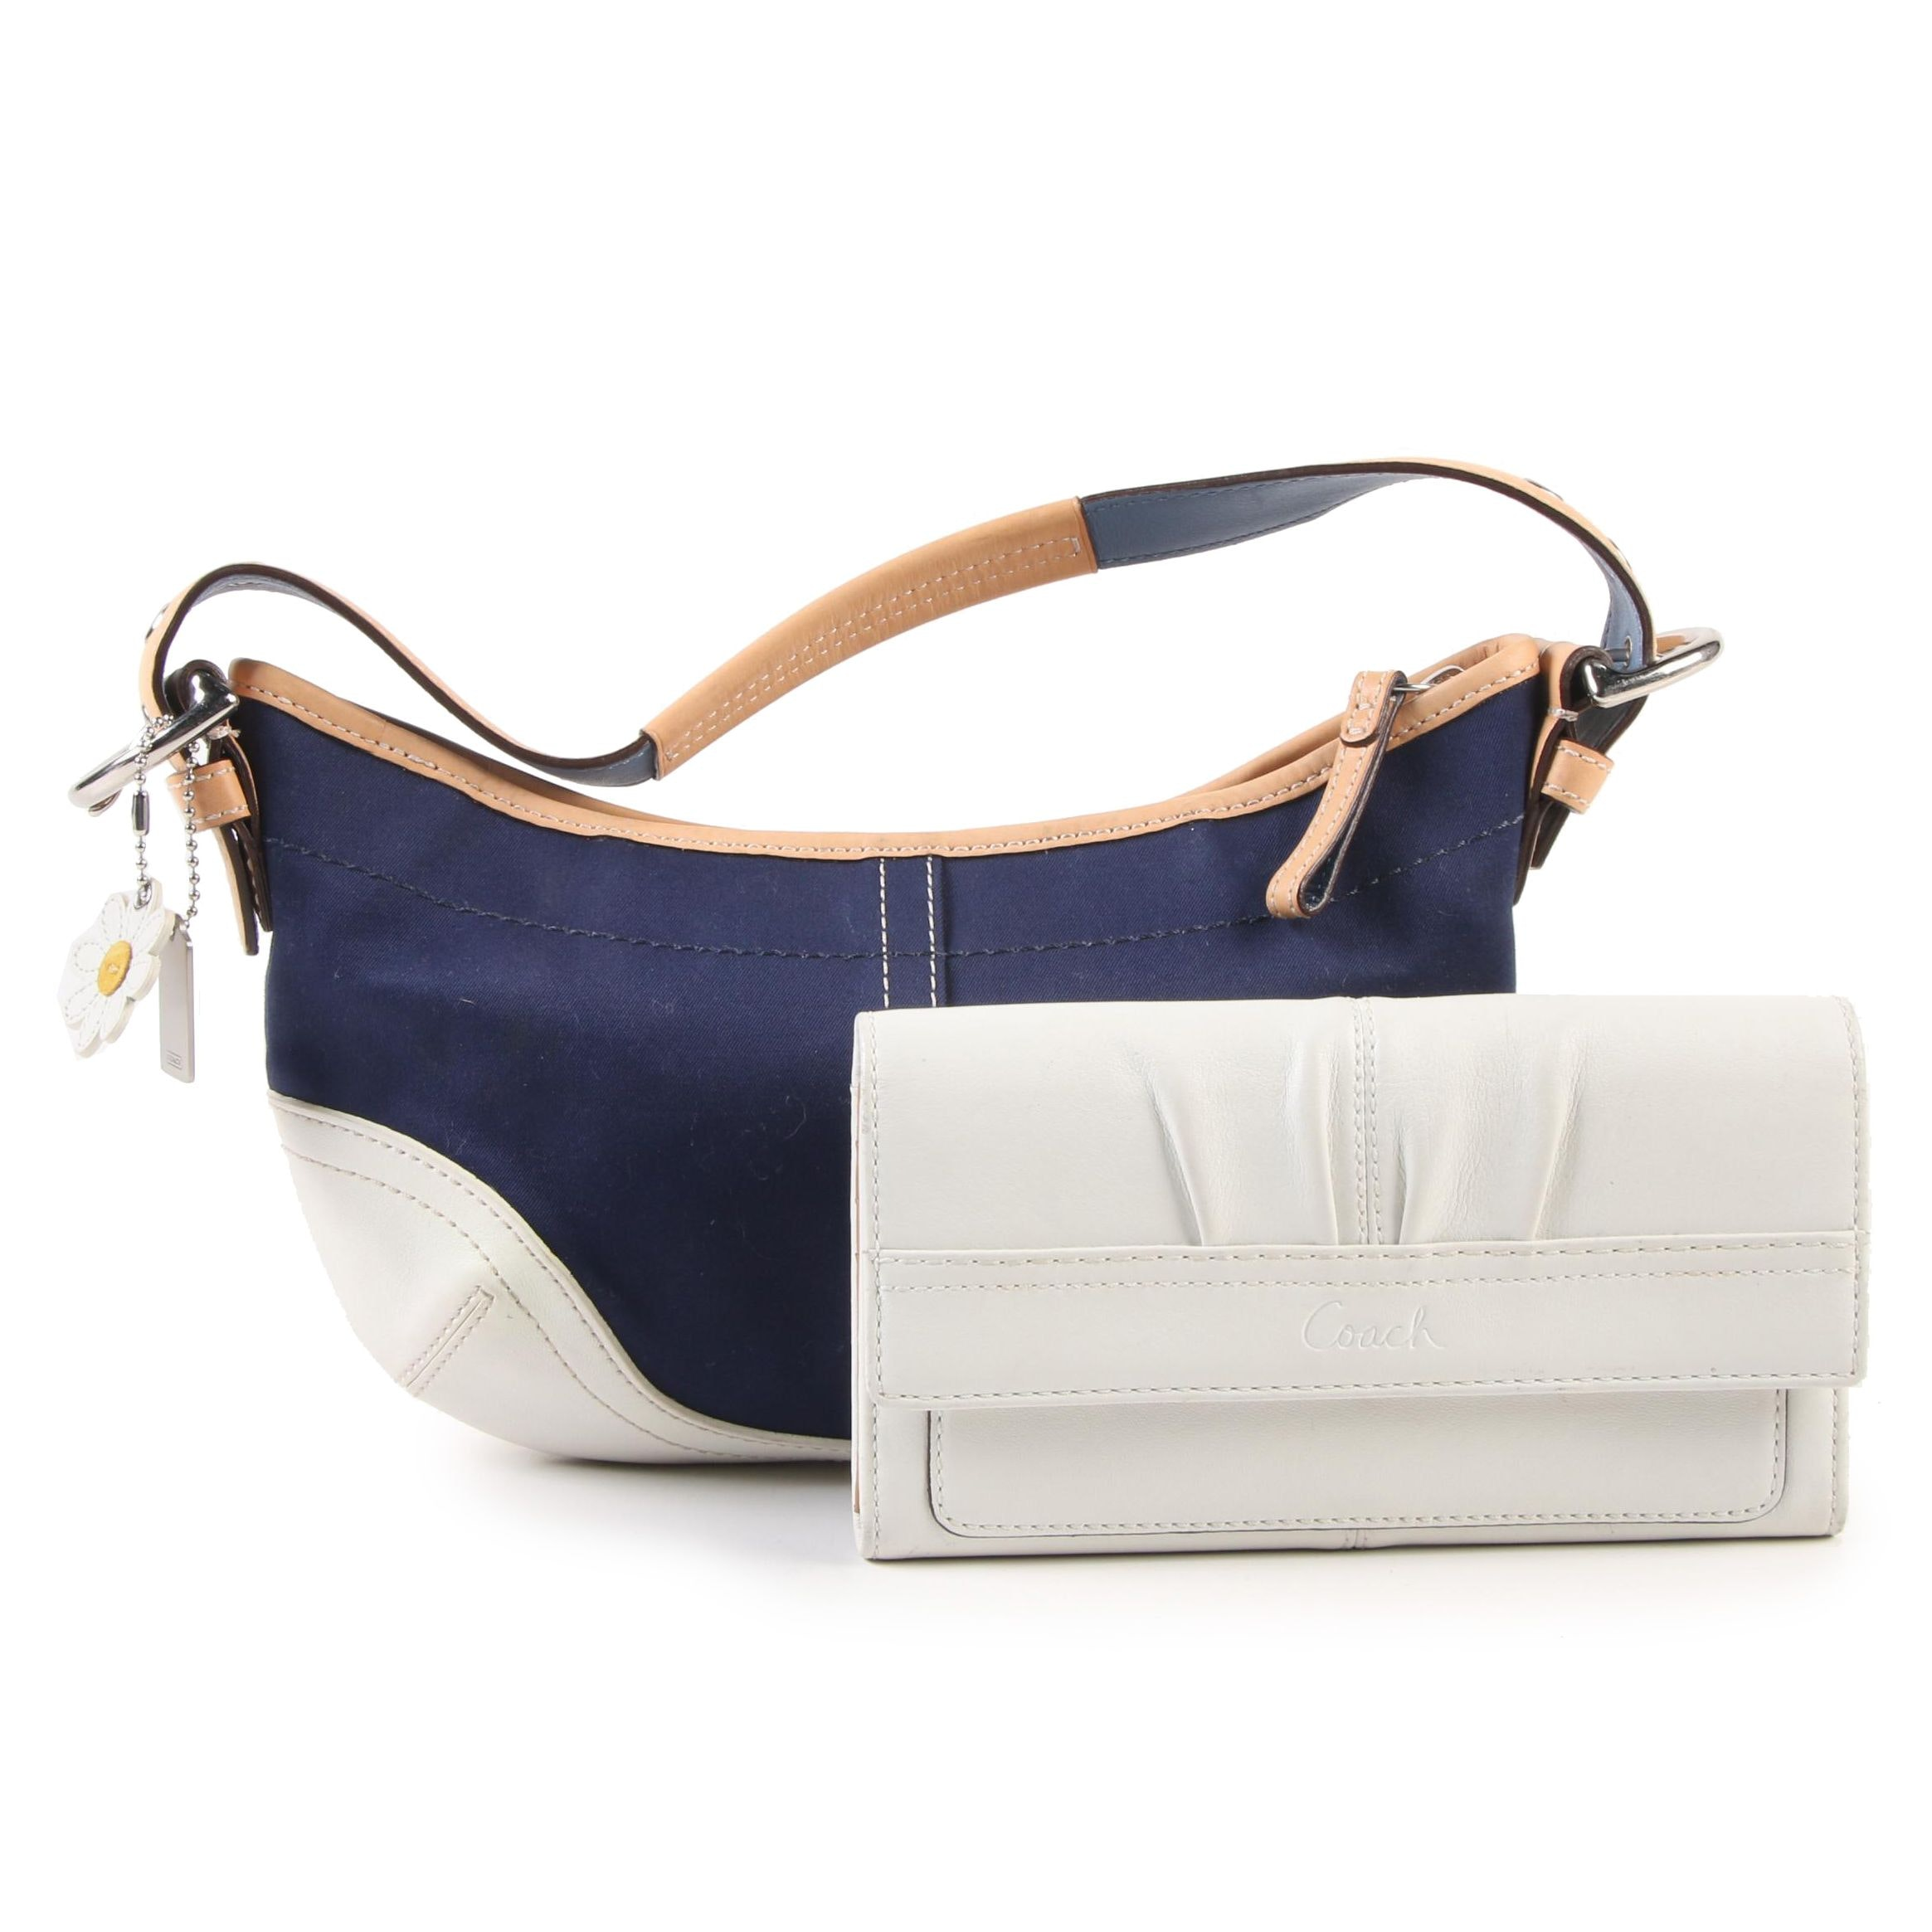 Coach Daisy Hobo Bag in Navy Blue Canvas and Leather with Soho Pleated Wallet